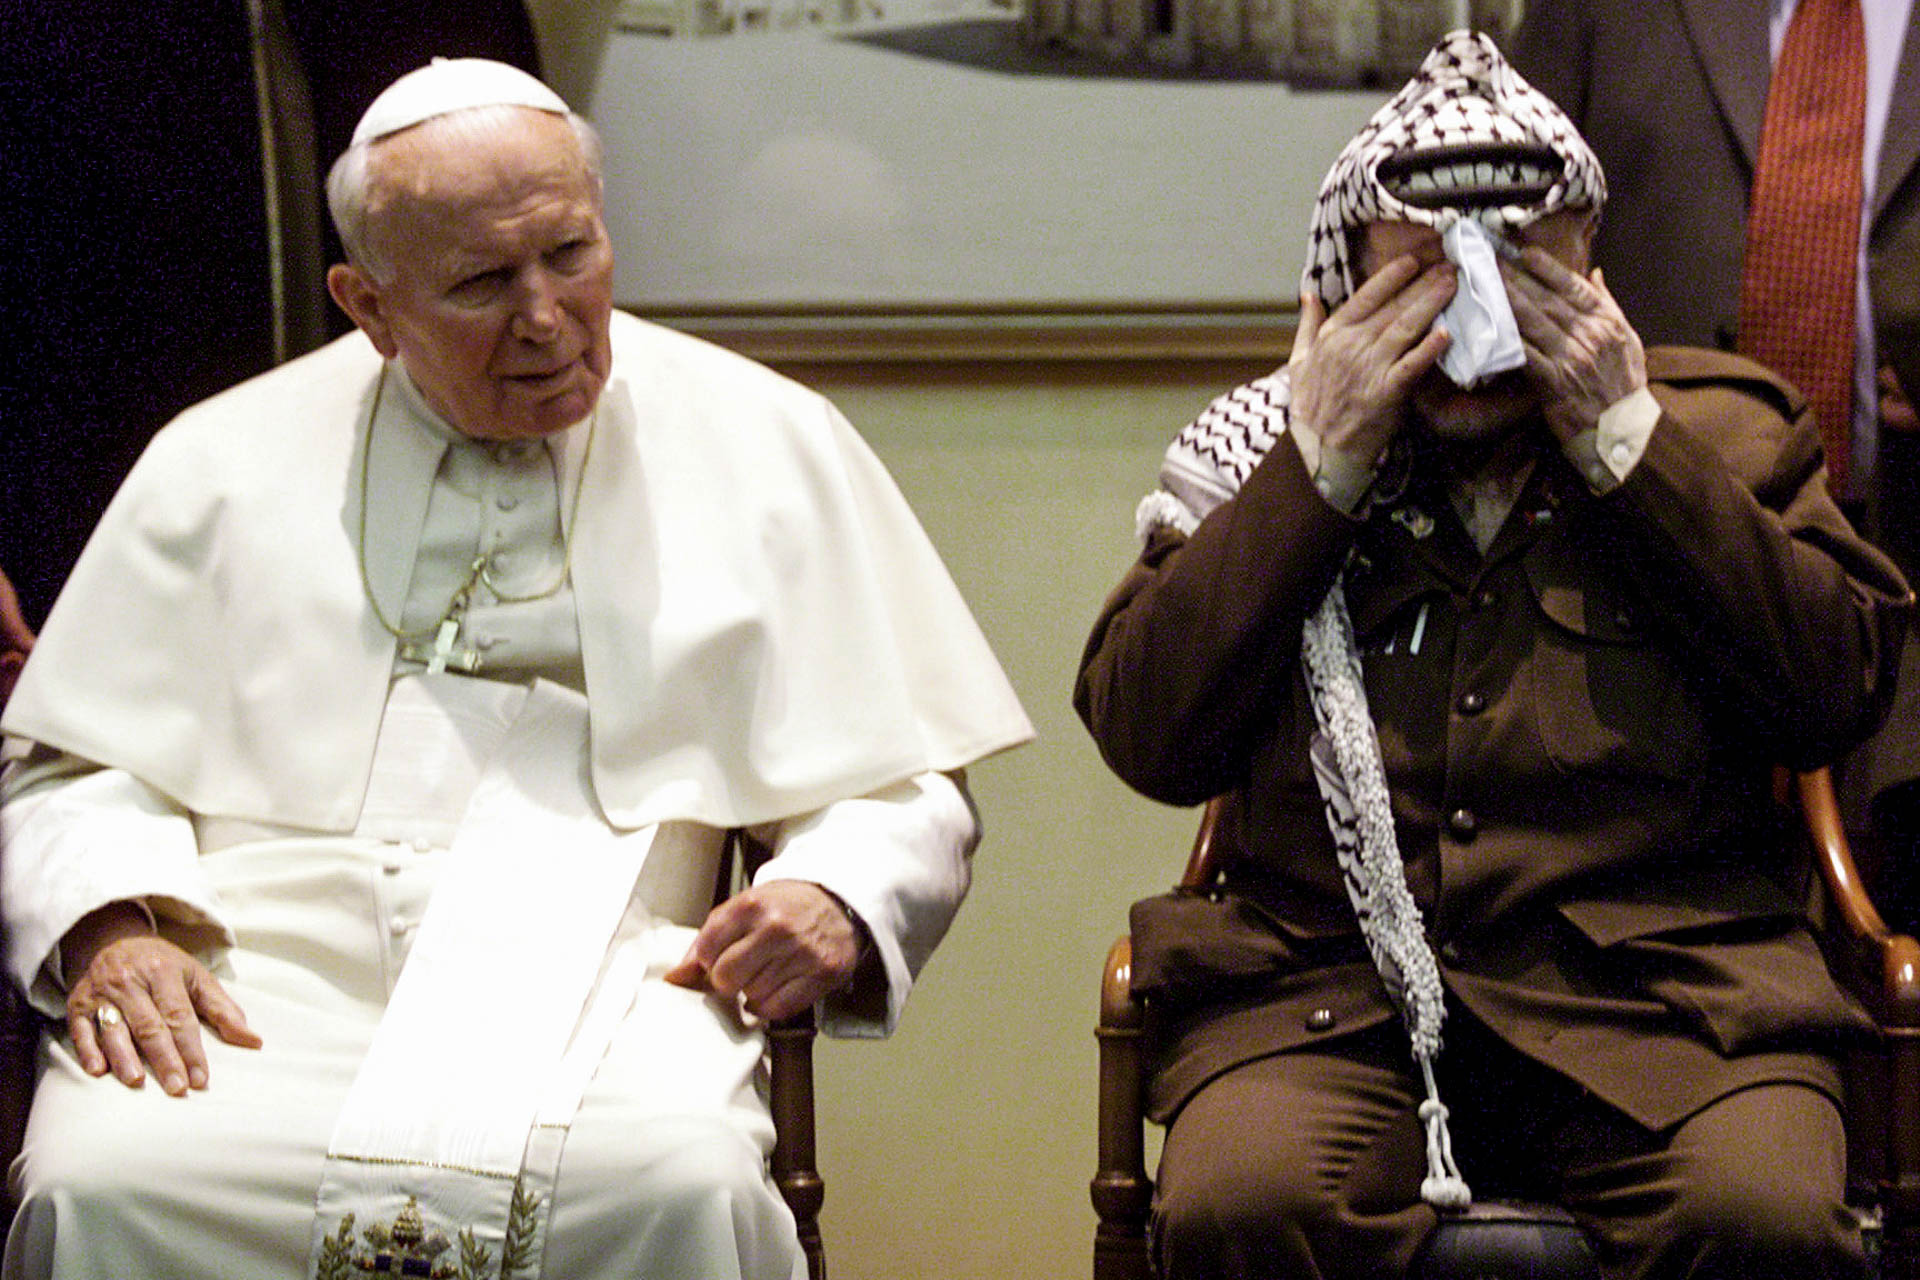 Bethlehem, Palestine - 22 March 2000 Pope John Paul II and President Yasser Arafat during welcome ceremony in the Presidential Palace .